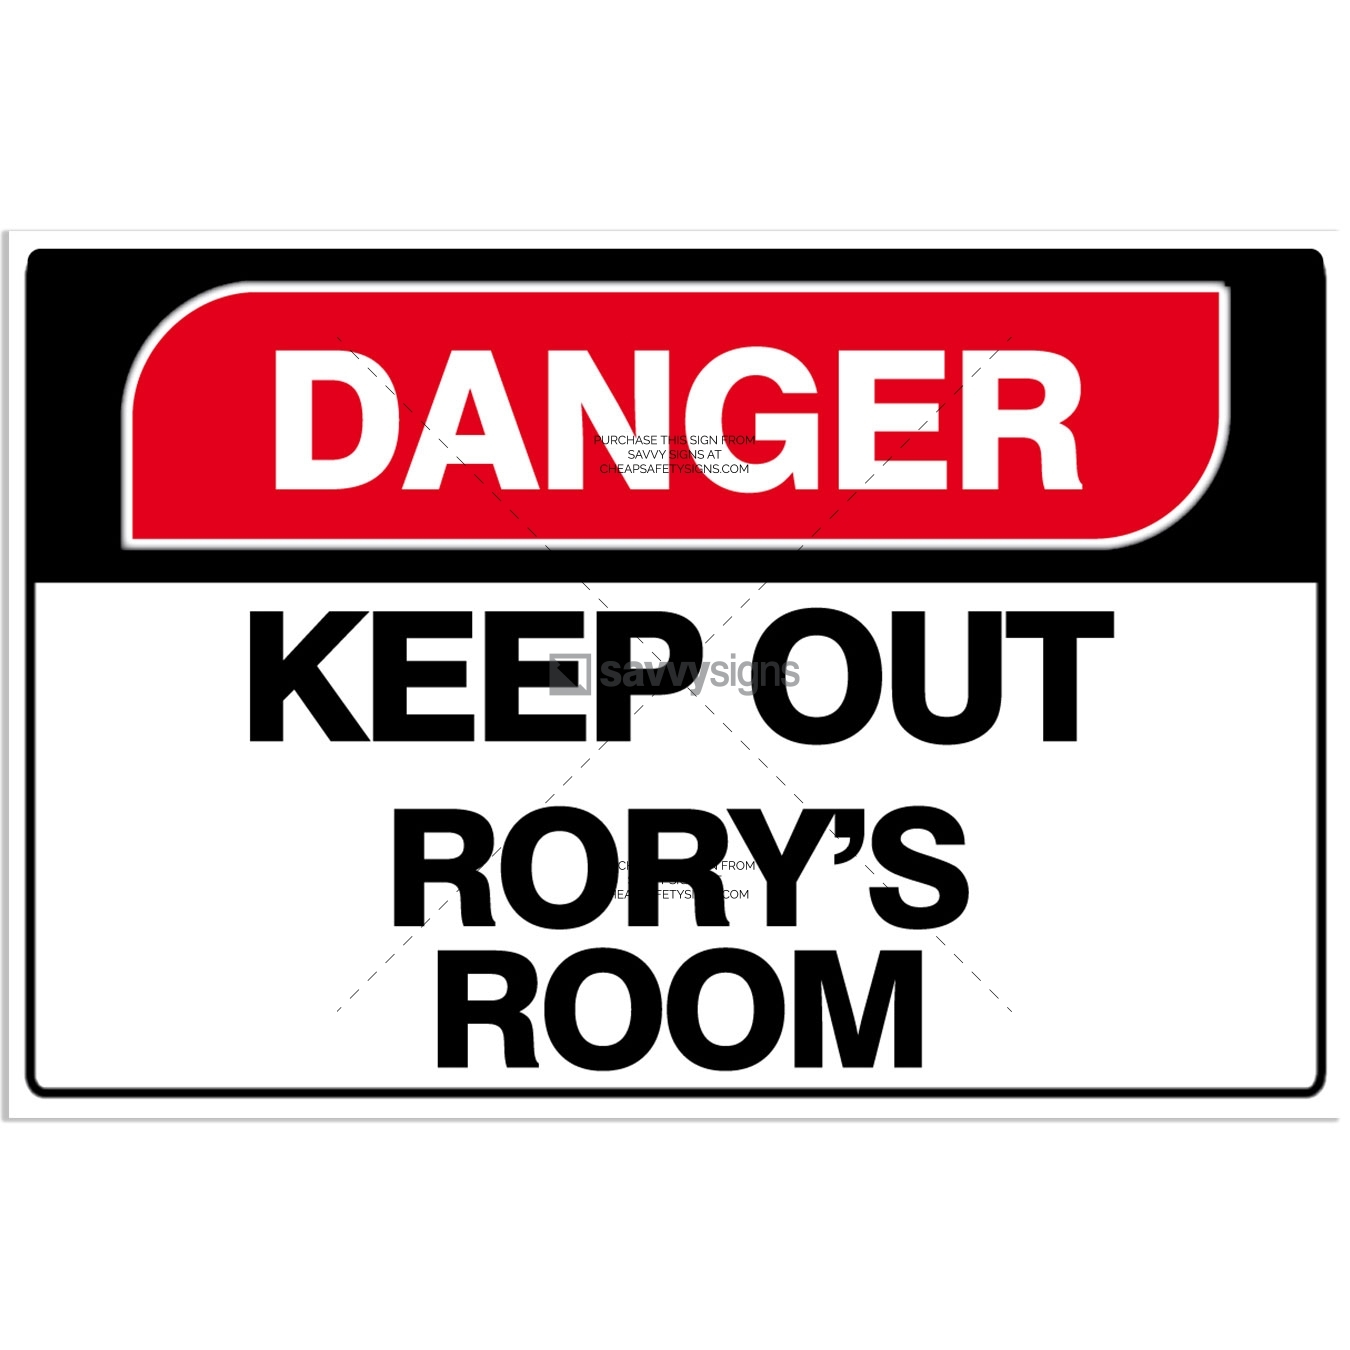 SSFUN3045-Danger-B-Kids-Bedroom-Door-Sign_Savvy-Signs_v1